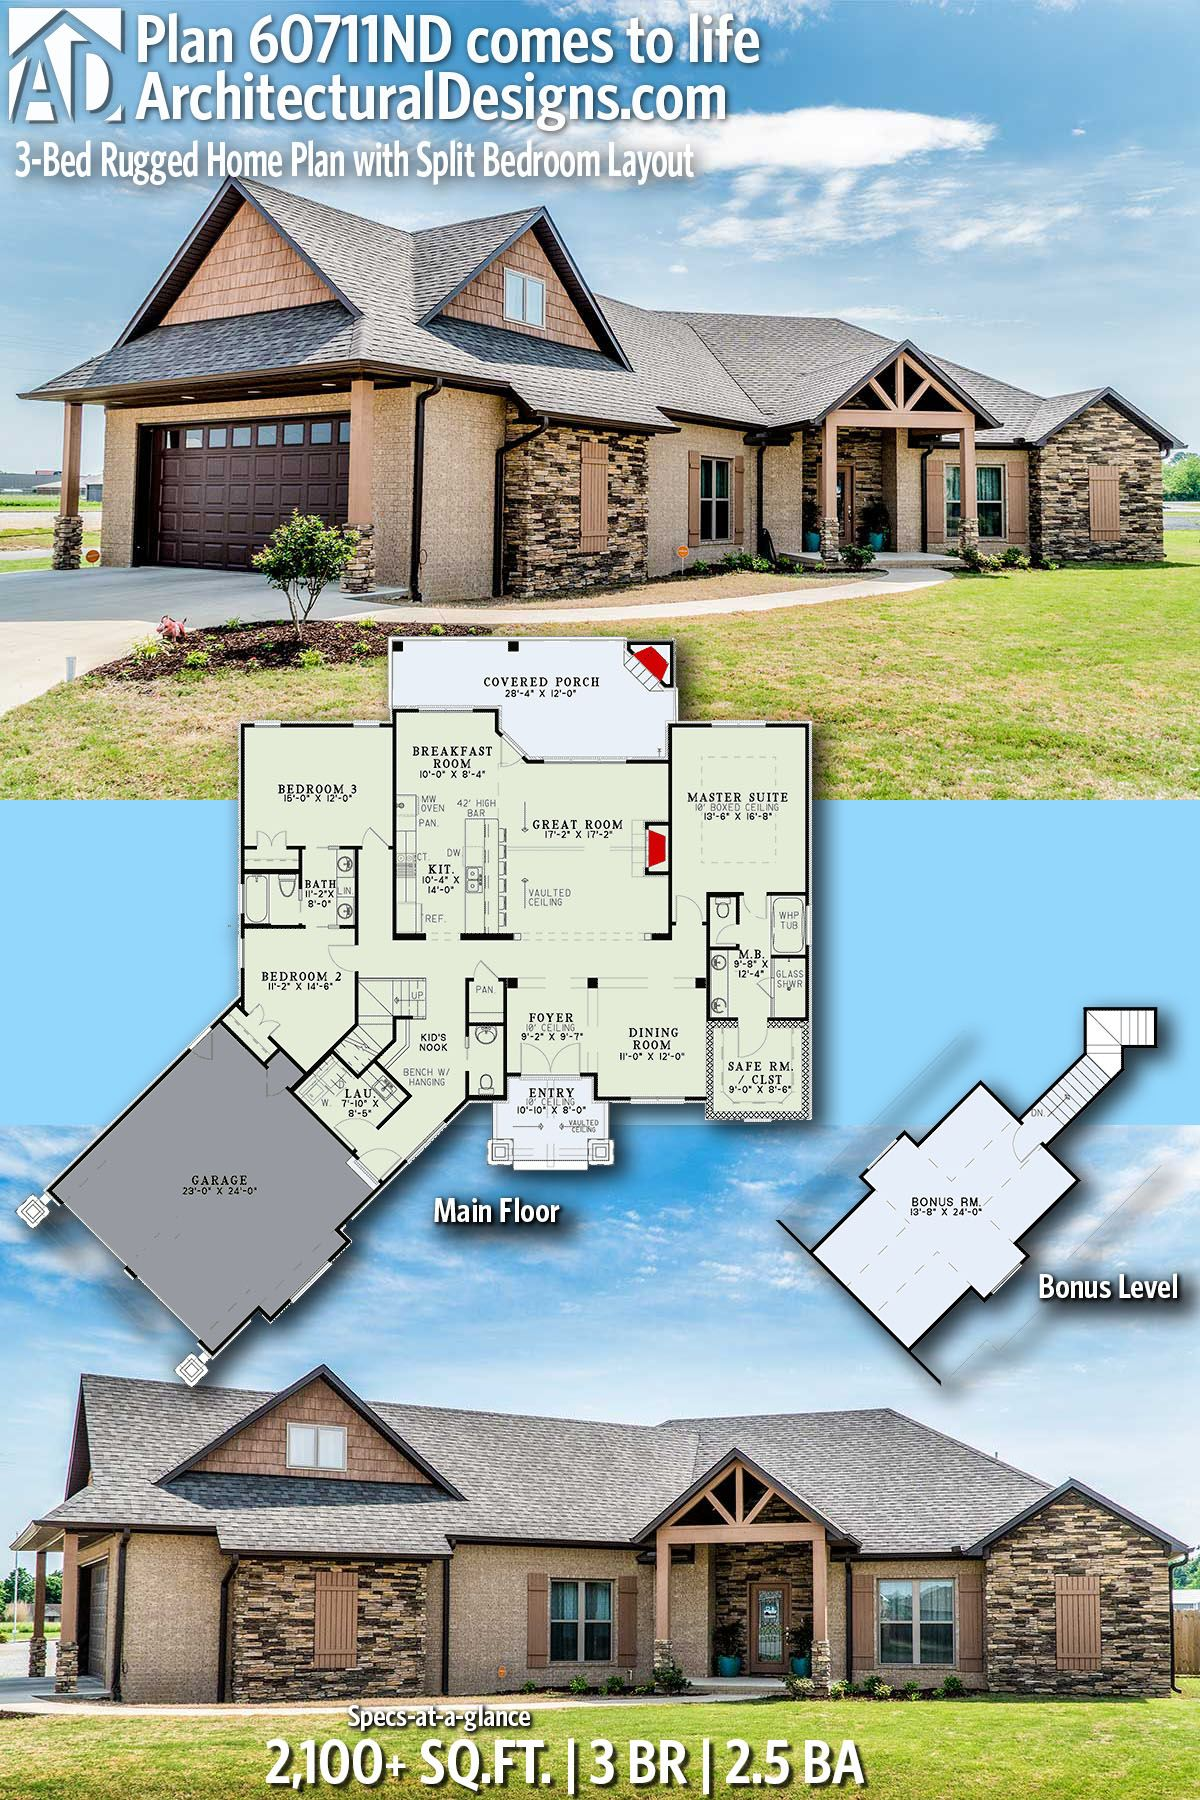 Plan 60711nd 3 Bed Rugged Home Plan With Split Bedroom Layout Architectural Design House Plans House Plans Lake House Plans